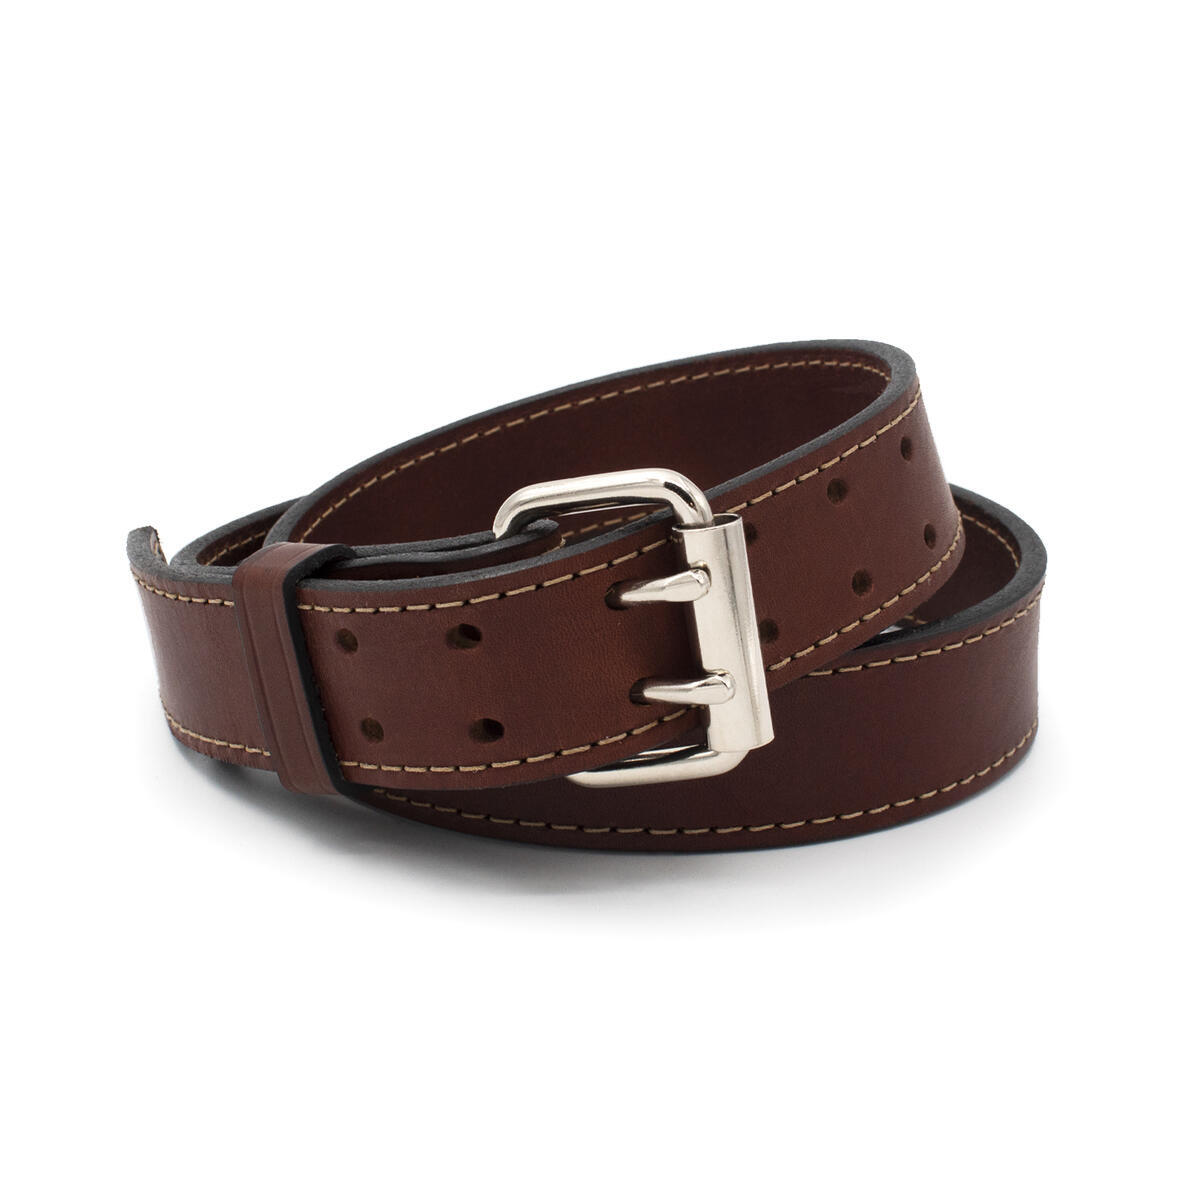 The Double Tap Leather Gun Belt | Made in USA | 14 oz Full Grain Leather CCW Belt | All Sizes & Colors Eligible